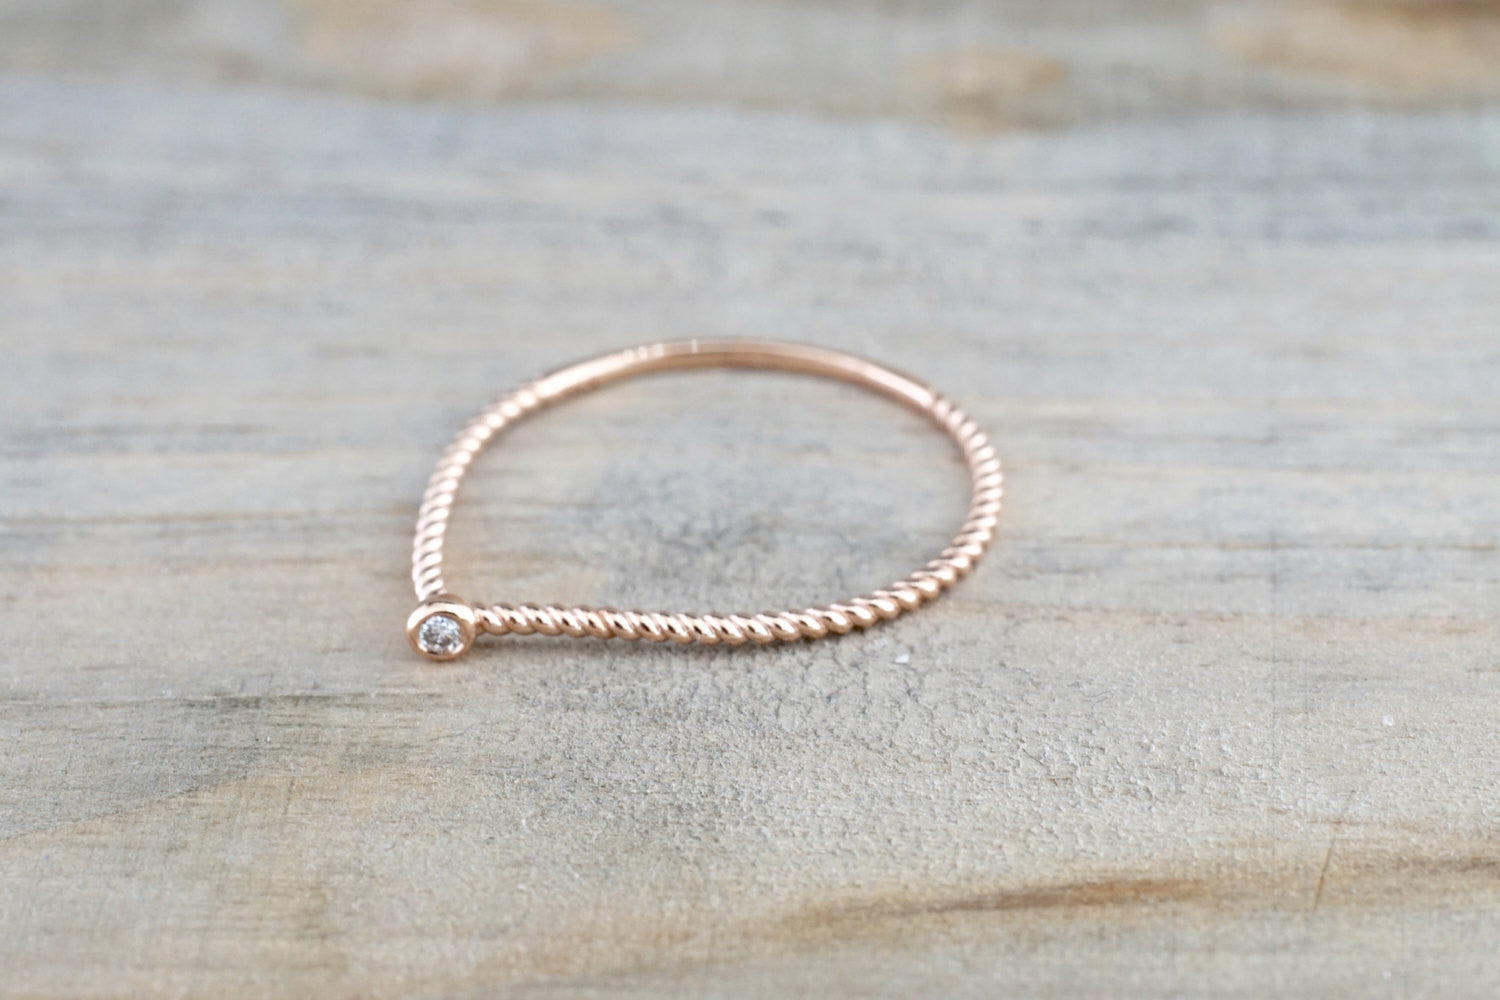 14k Rose Gold Round Cut Diamond Bezel Fashion Ring Rope Design Band - Brilliant Facets